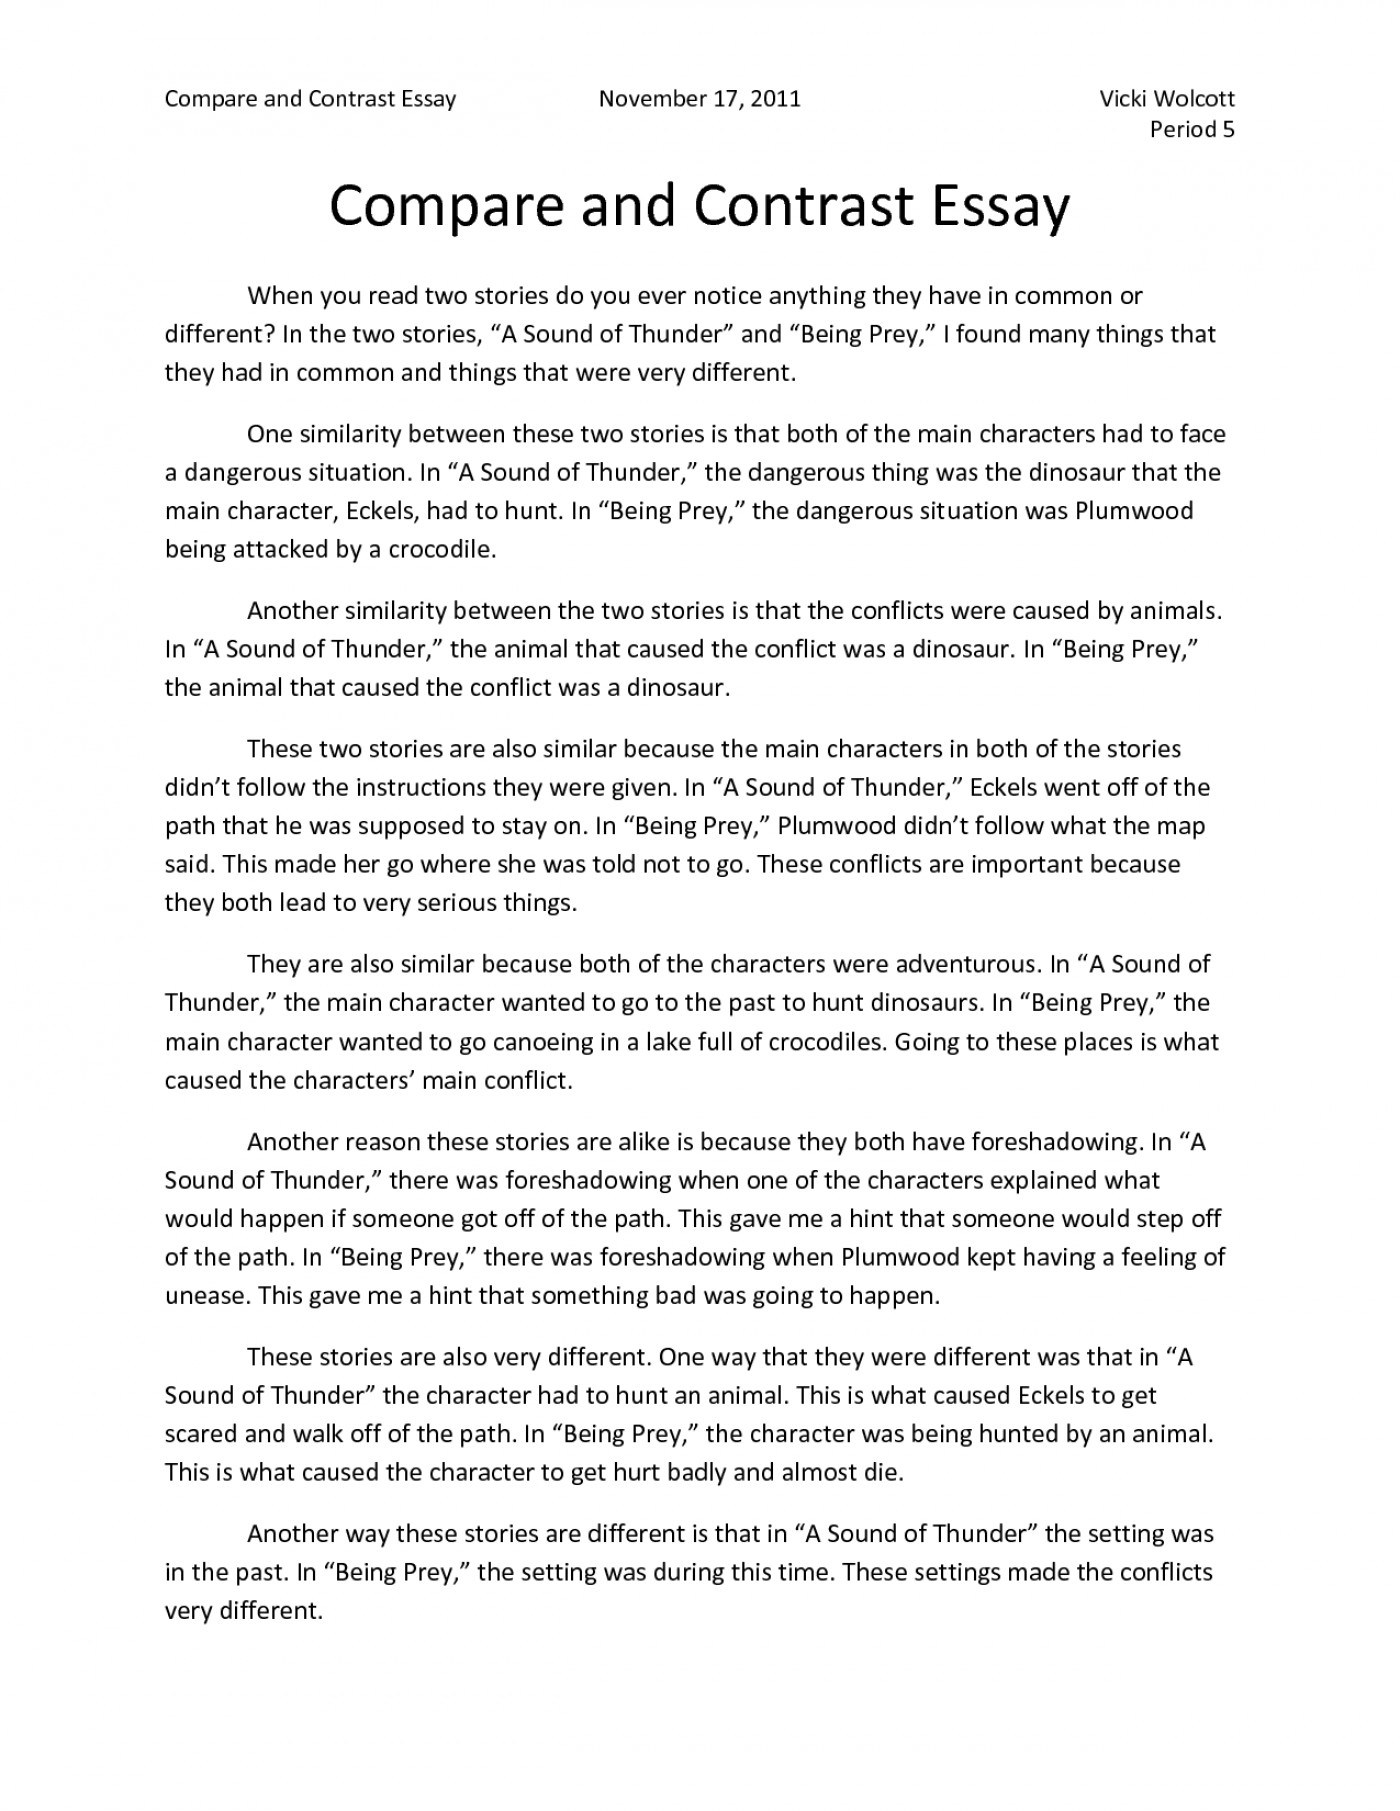 003 Perfect Essays Compare And Contrast Essay Introduction Example How To Write College Striking Examples For Students Topics 7th Grade 1400